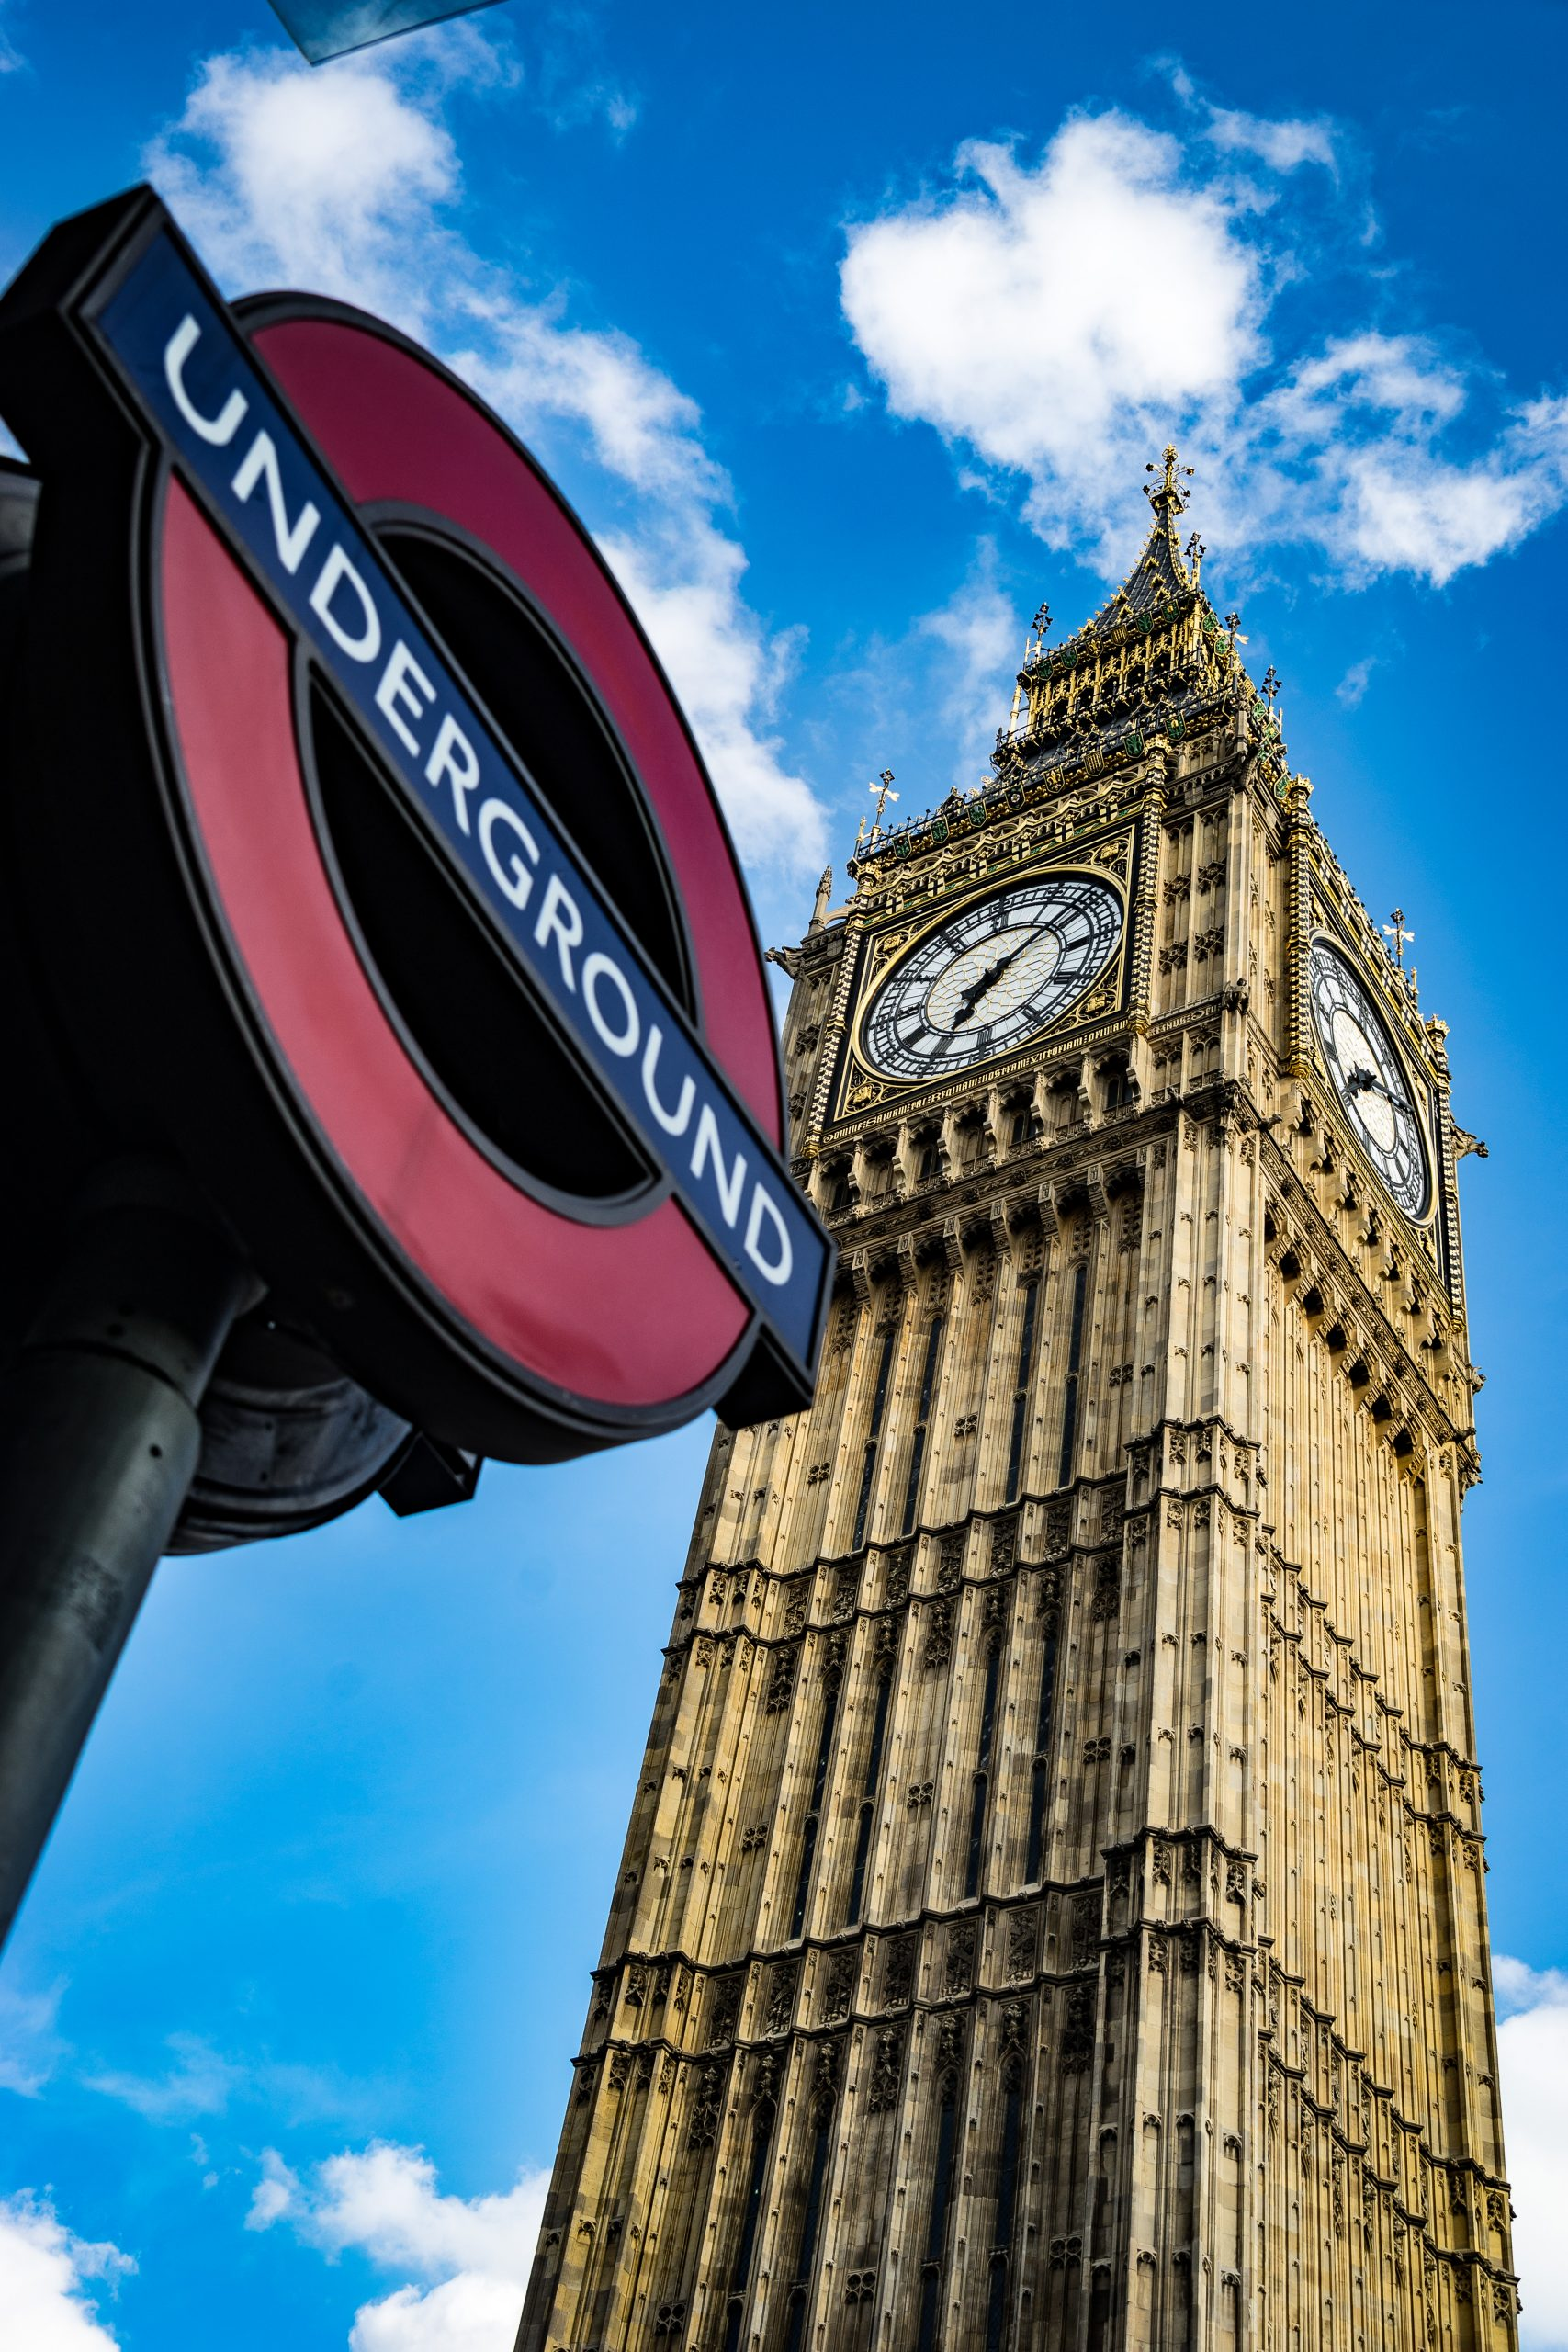 YFFUK PHil Endicott Big Ben with the underground sign who I am and why i do what I do